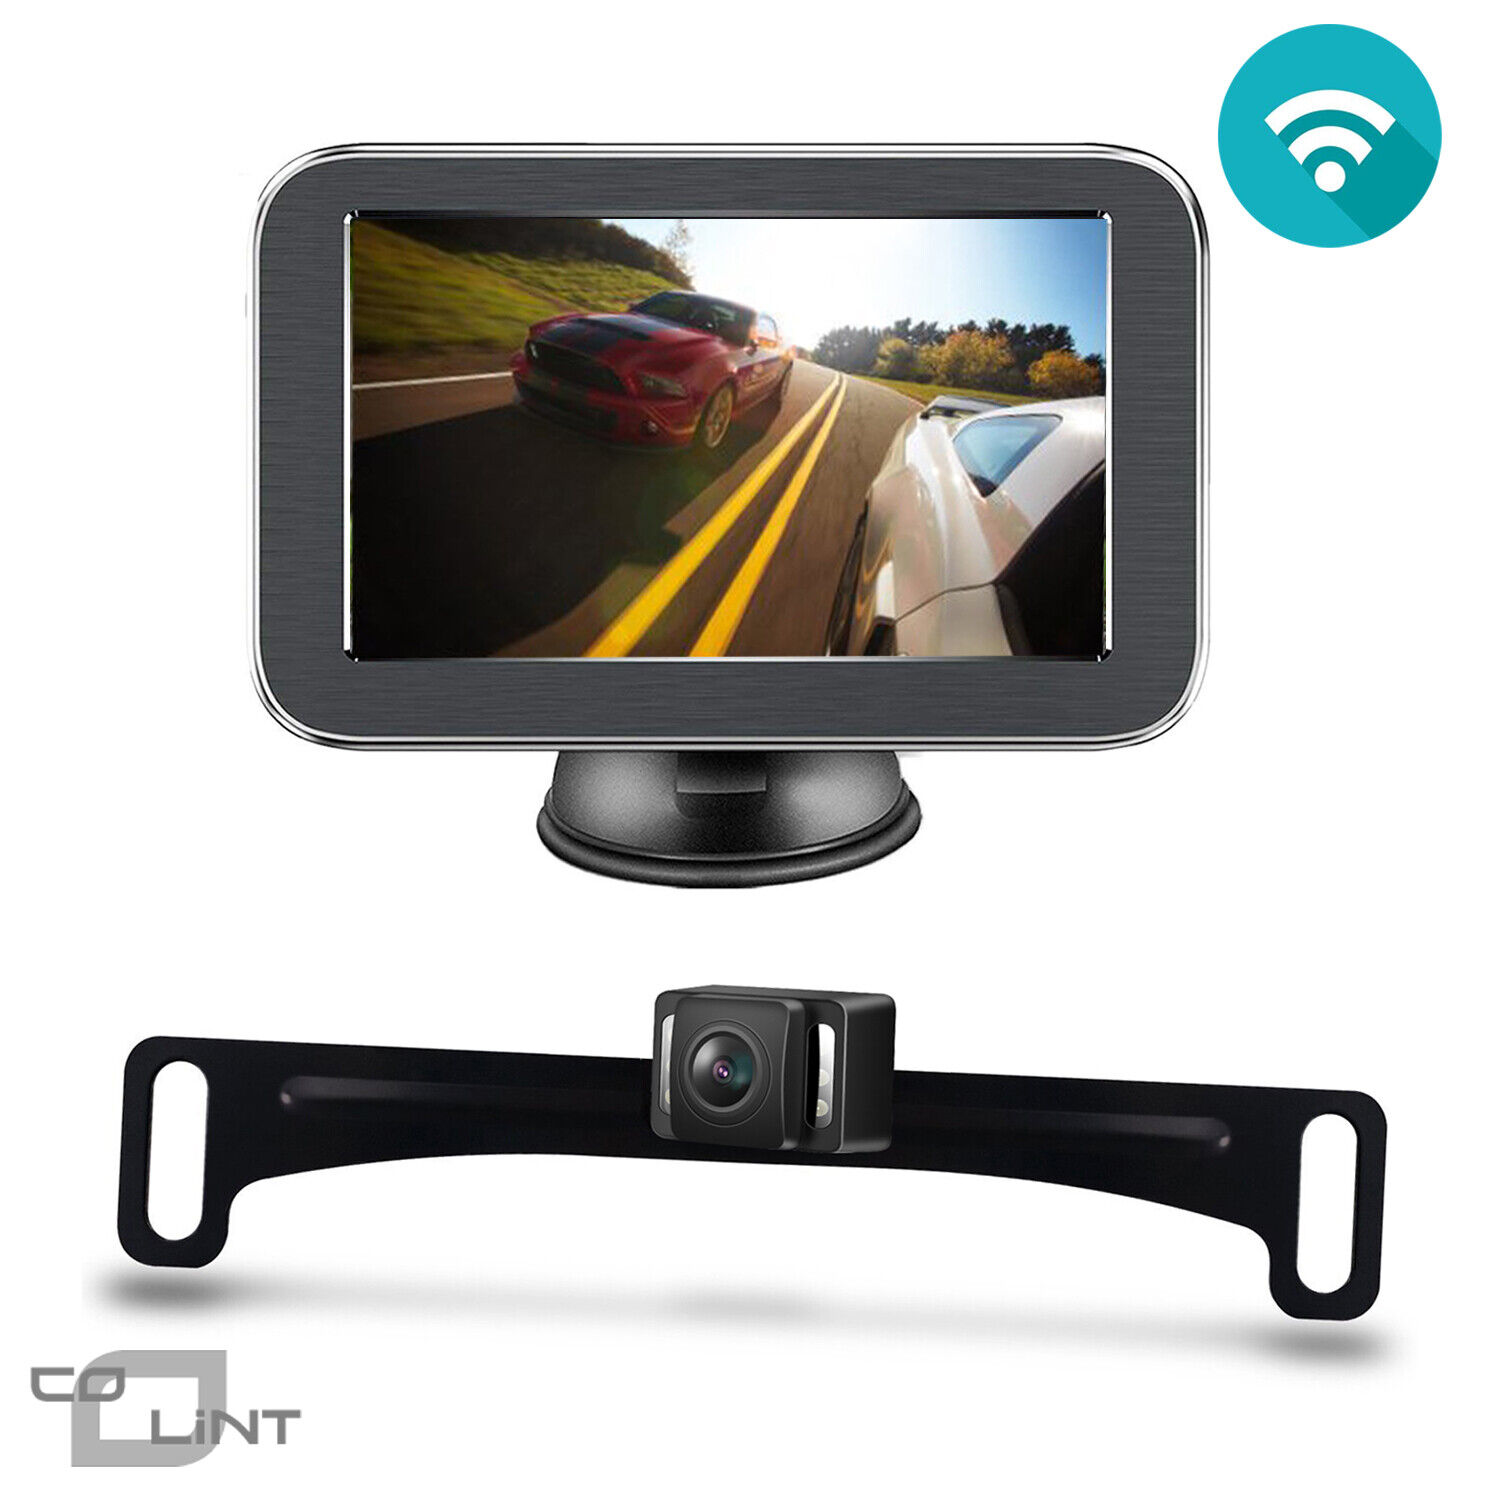 Wireless Backup Camera >> Details About Wireless Backup Camera With Monitor Kit 5 Inch Lcd Rear View Monitor Rear Camera